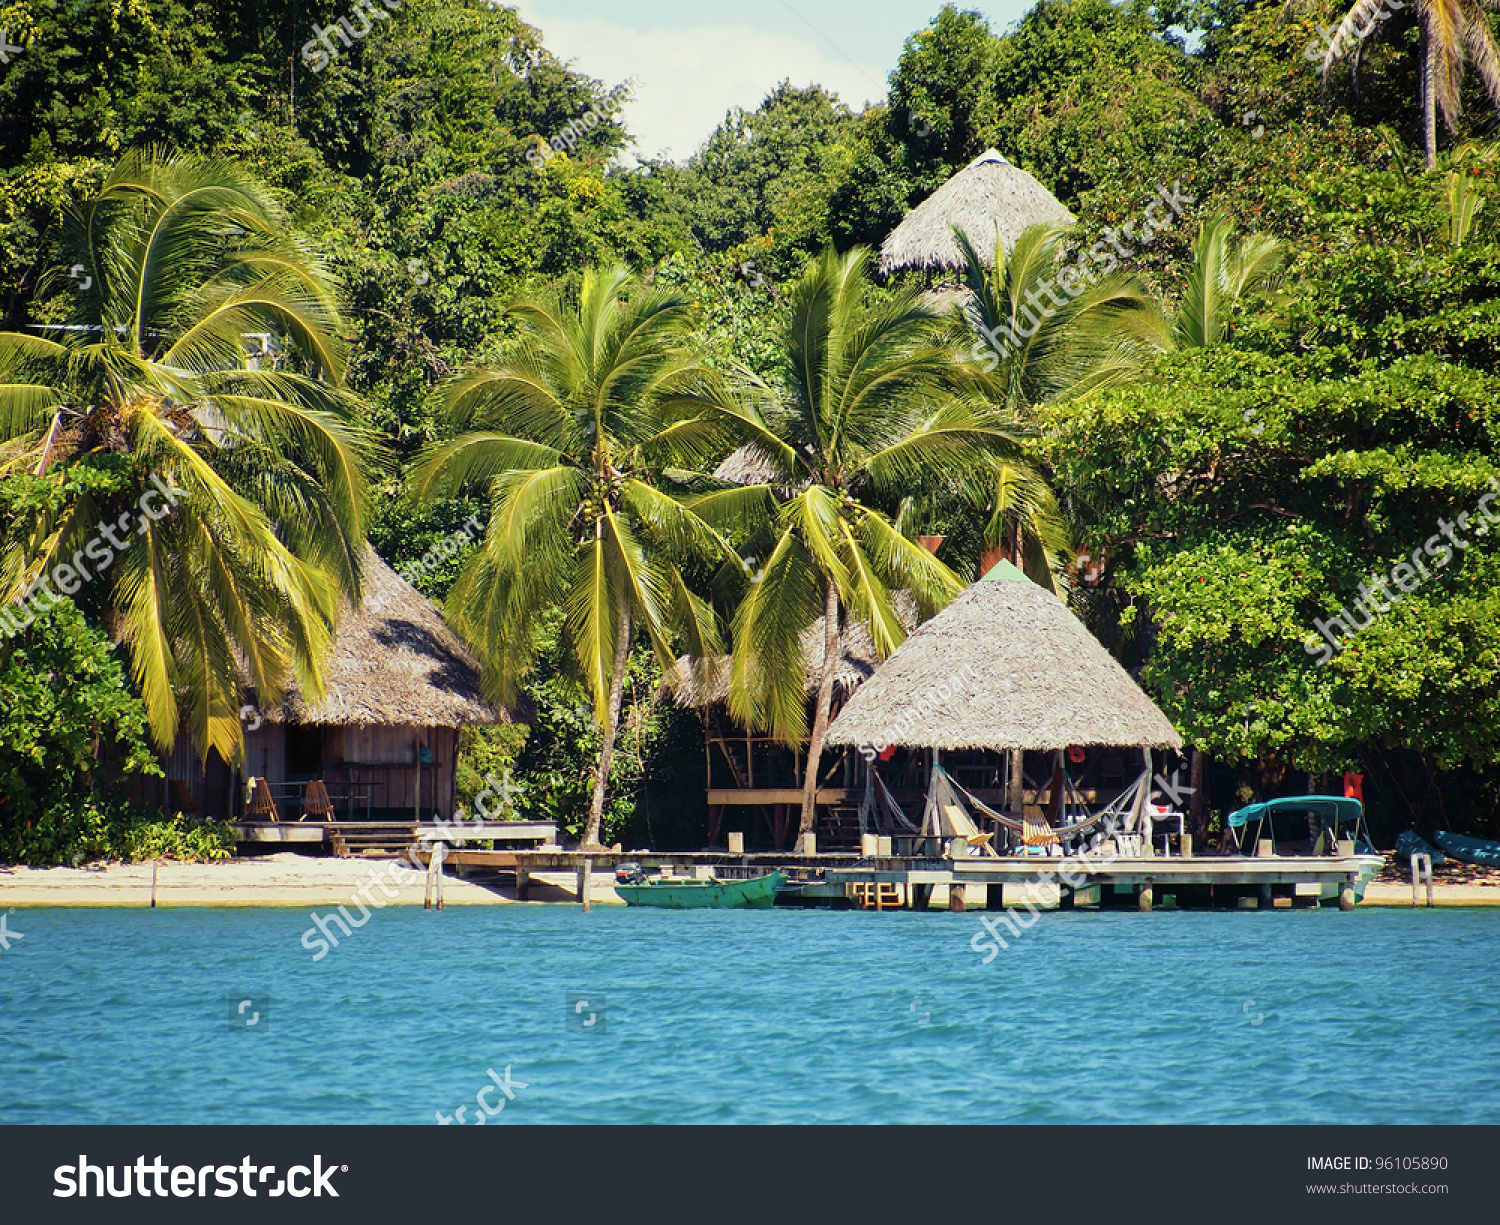 Tropical Beach Huts: Eco Resort On A Caribbean Beach With Thatched Huts And